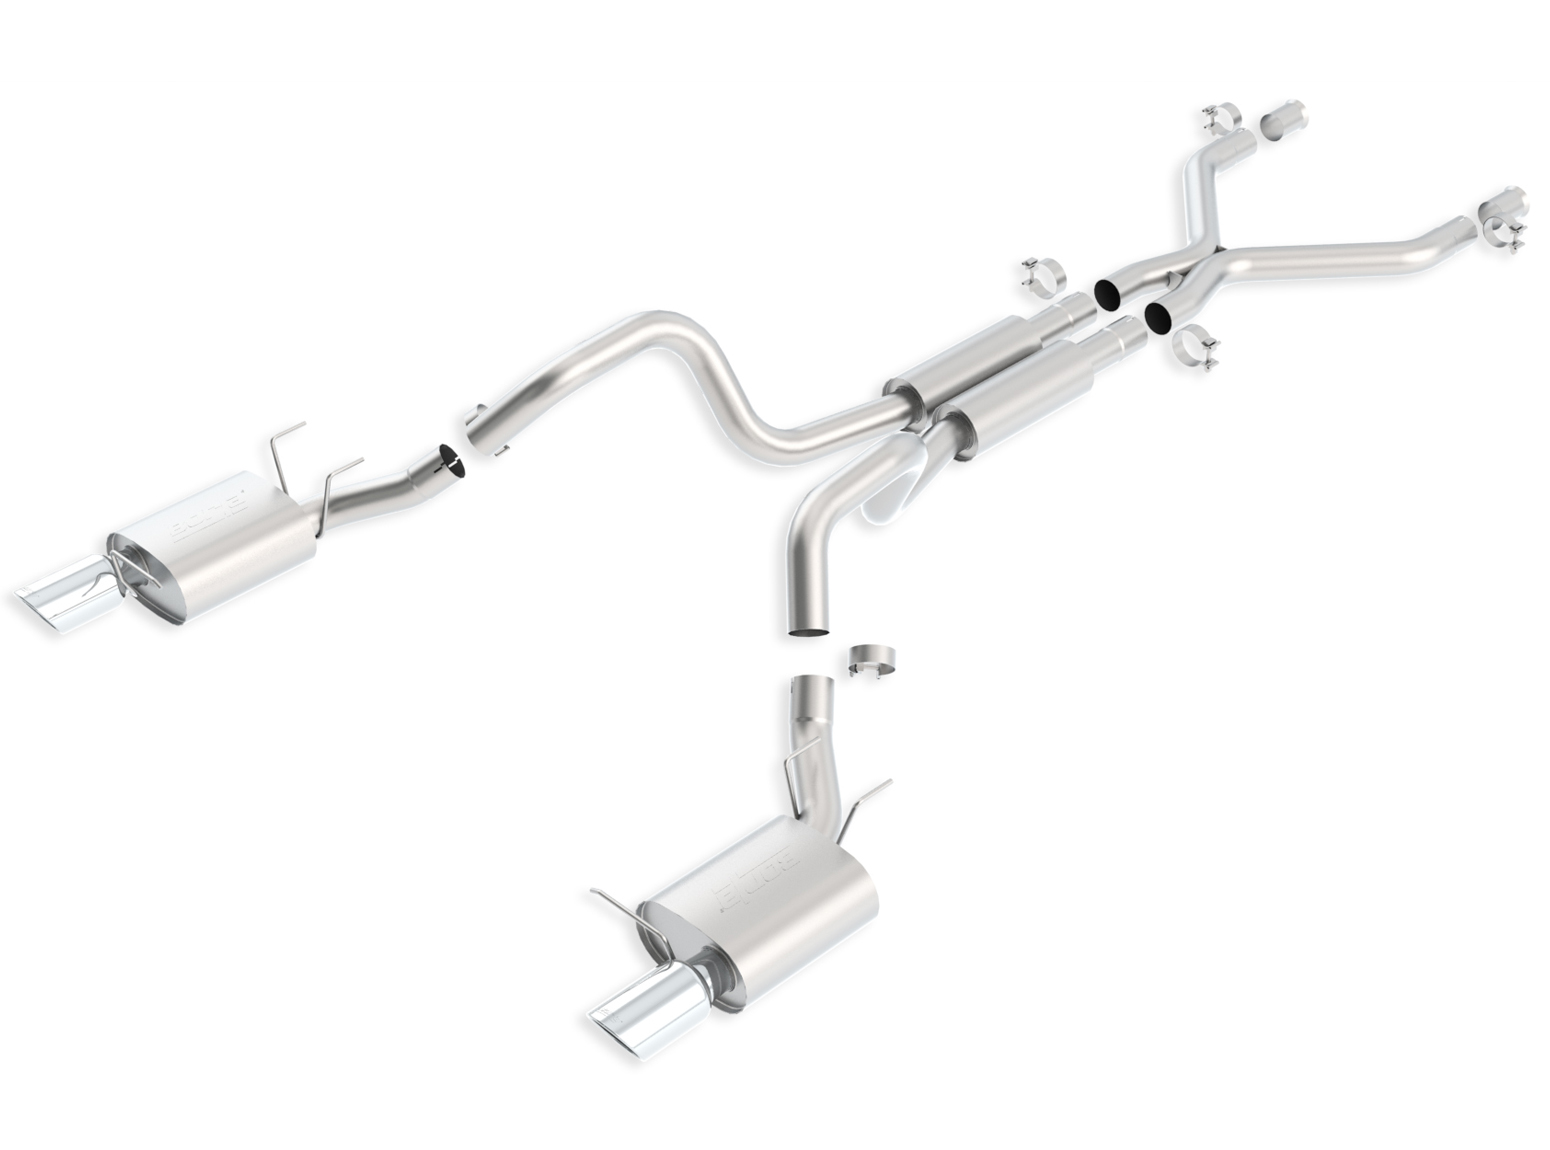 Ford Mustang Gt 2011-2012 Borla 3&#34; Cat-Back Exhaust System - Single Round Rolled Angle-Cut  Long X Single Round Rolled Angle-Cut Intercooled&quot; Dia